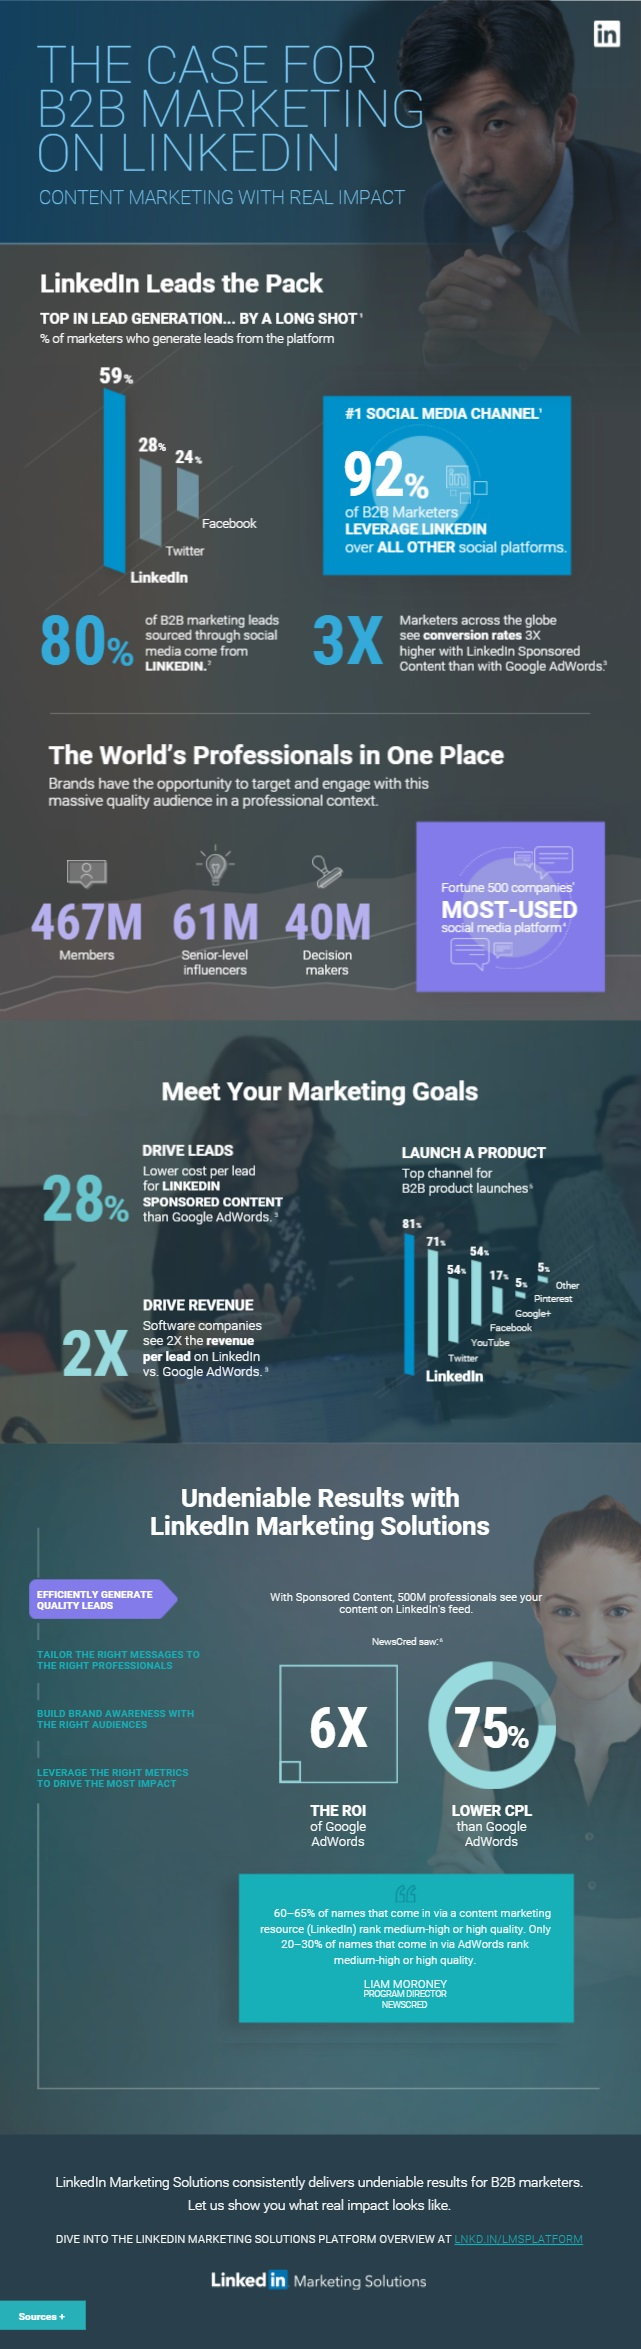 The Case for B2B Marketing on LinkedIn [Infographic] | Social Media Today